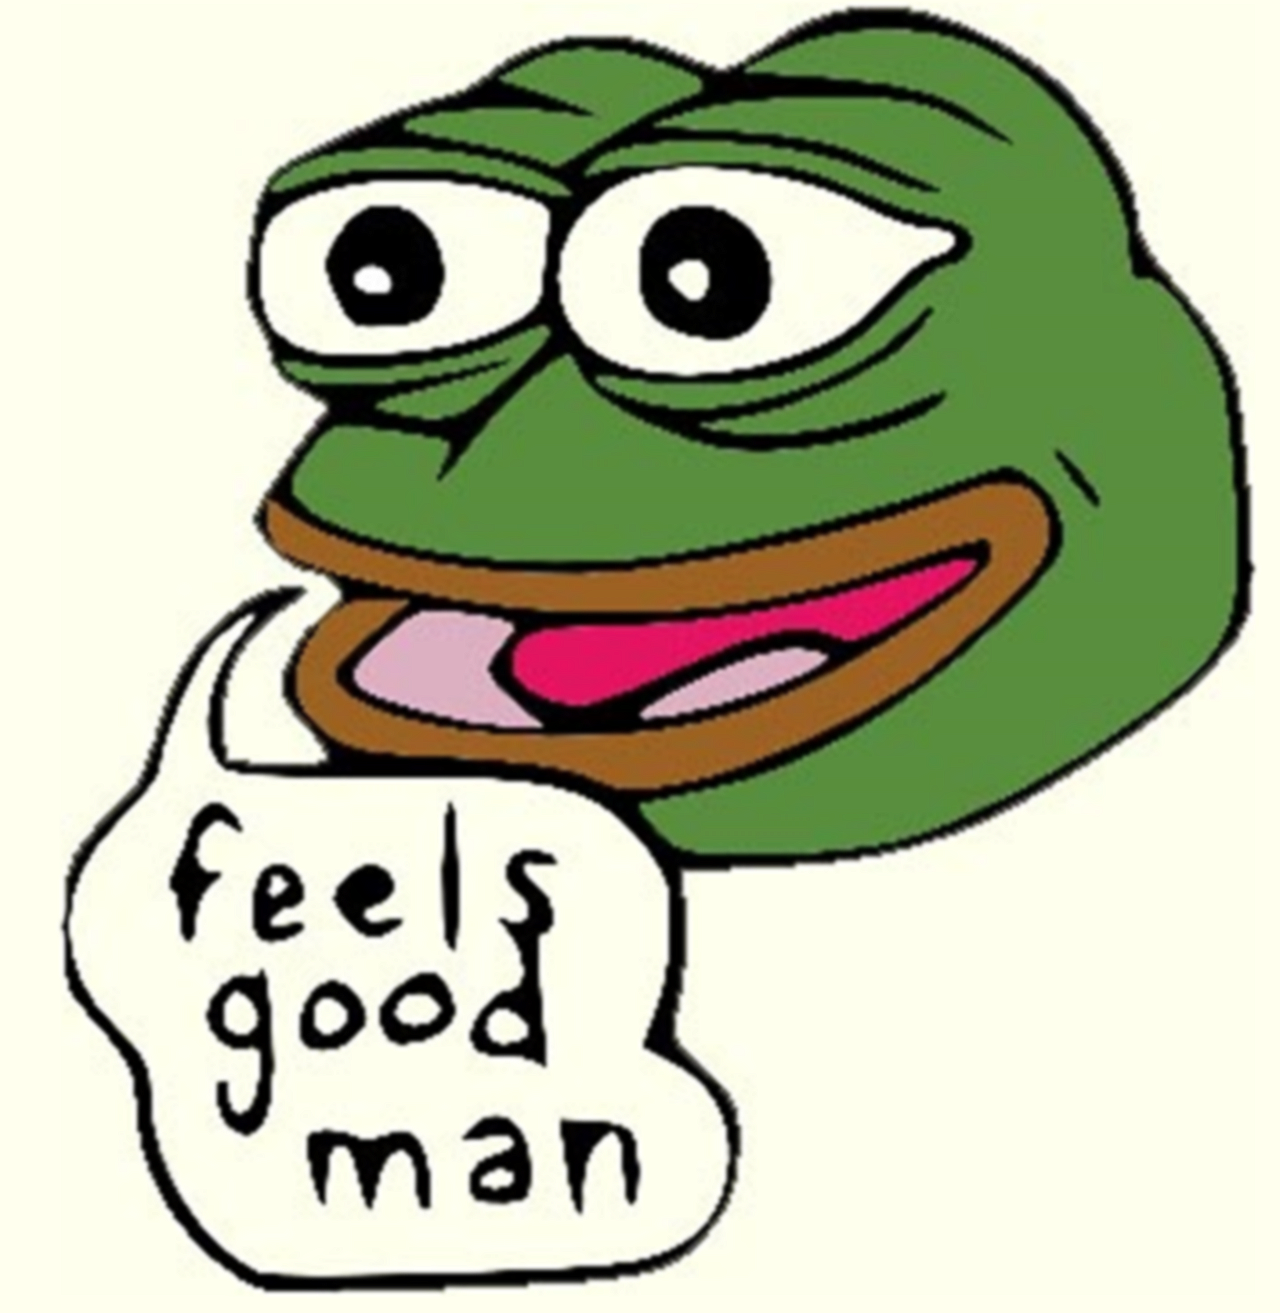 la-na-pol-pepe-the-frog-hate-symbol-20161011-snap.png